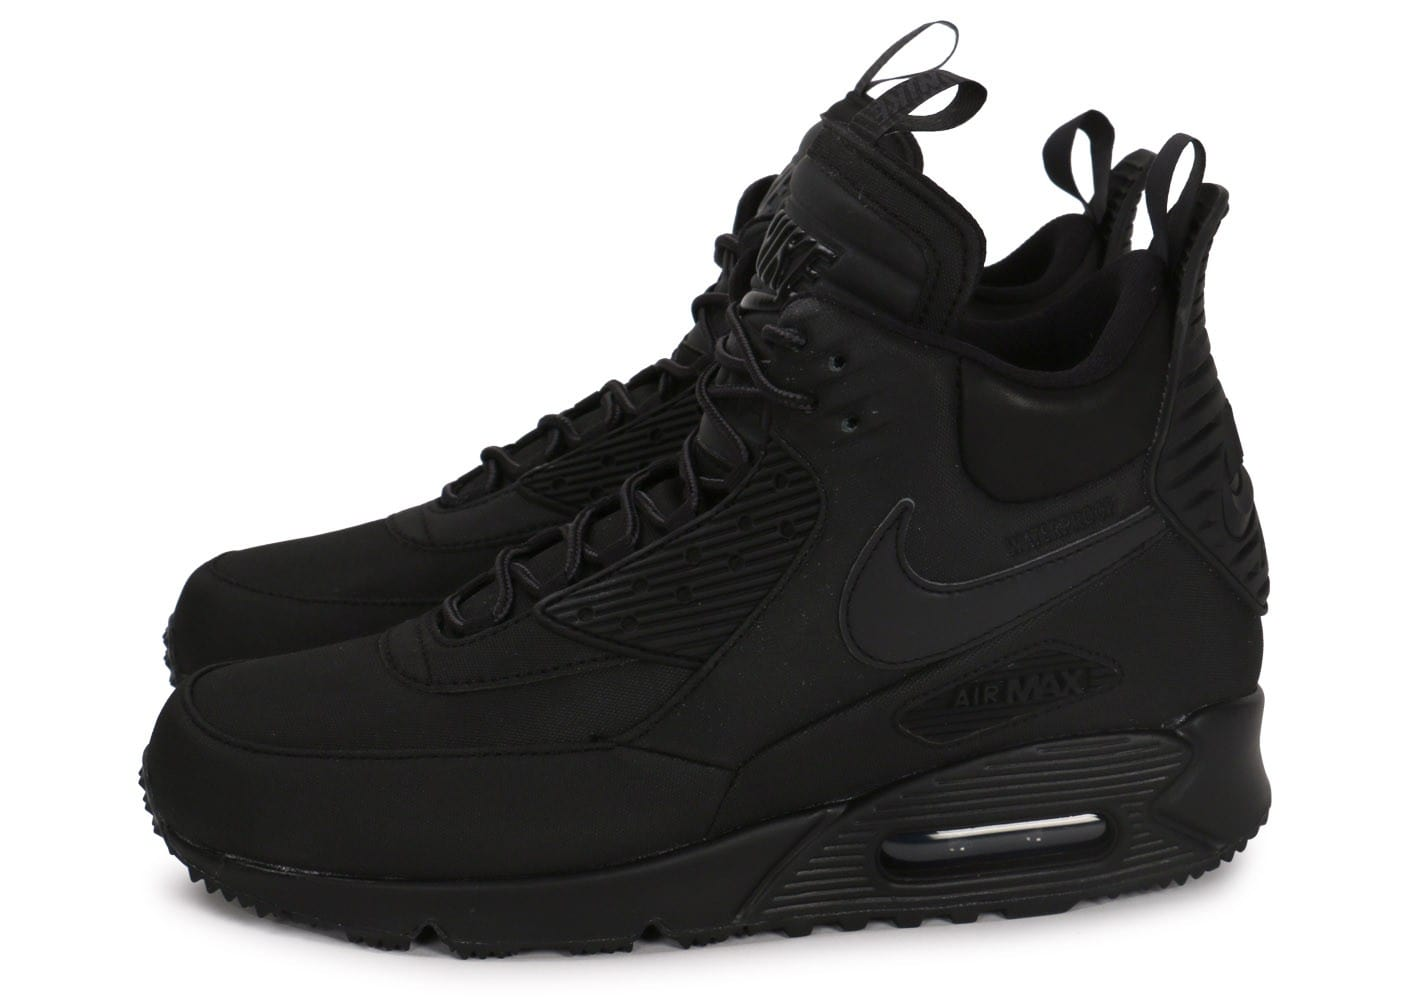 nike air max 90 sneakerboot winter black femme